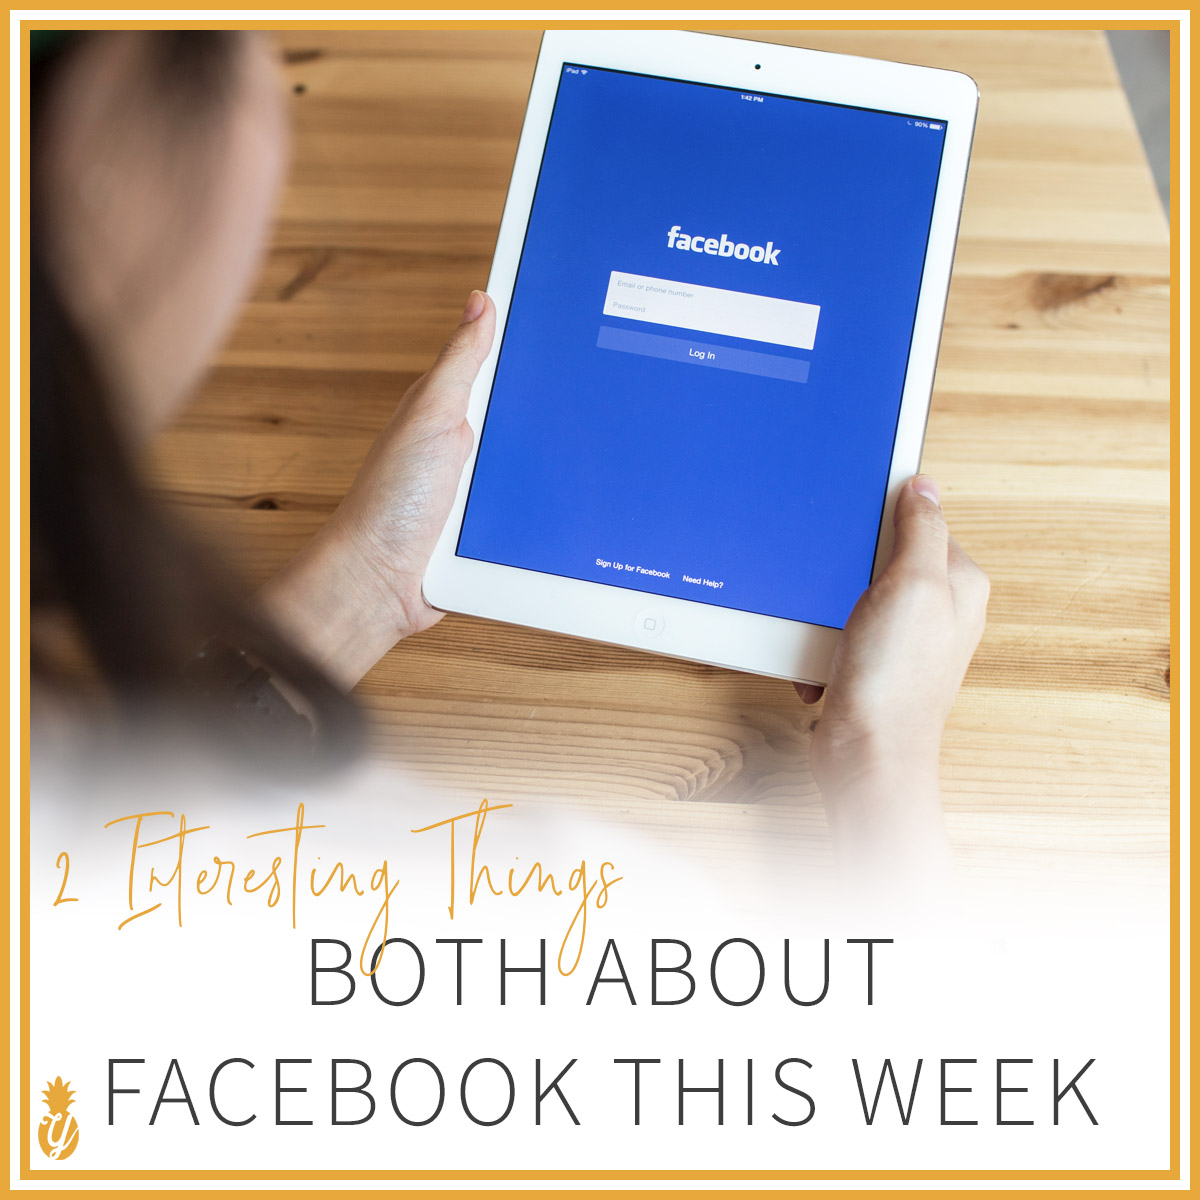 2 Interesting Things, both about Facebook this week